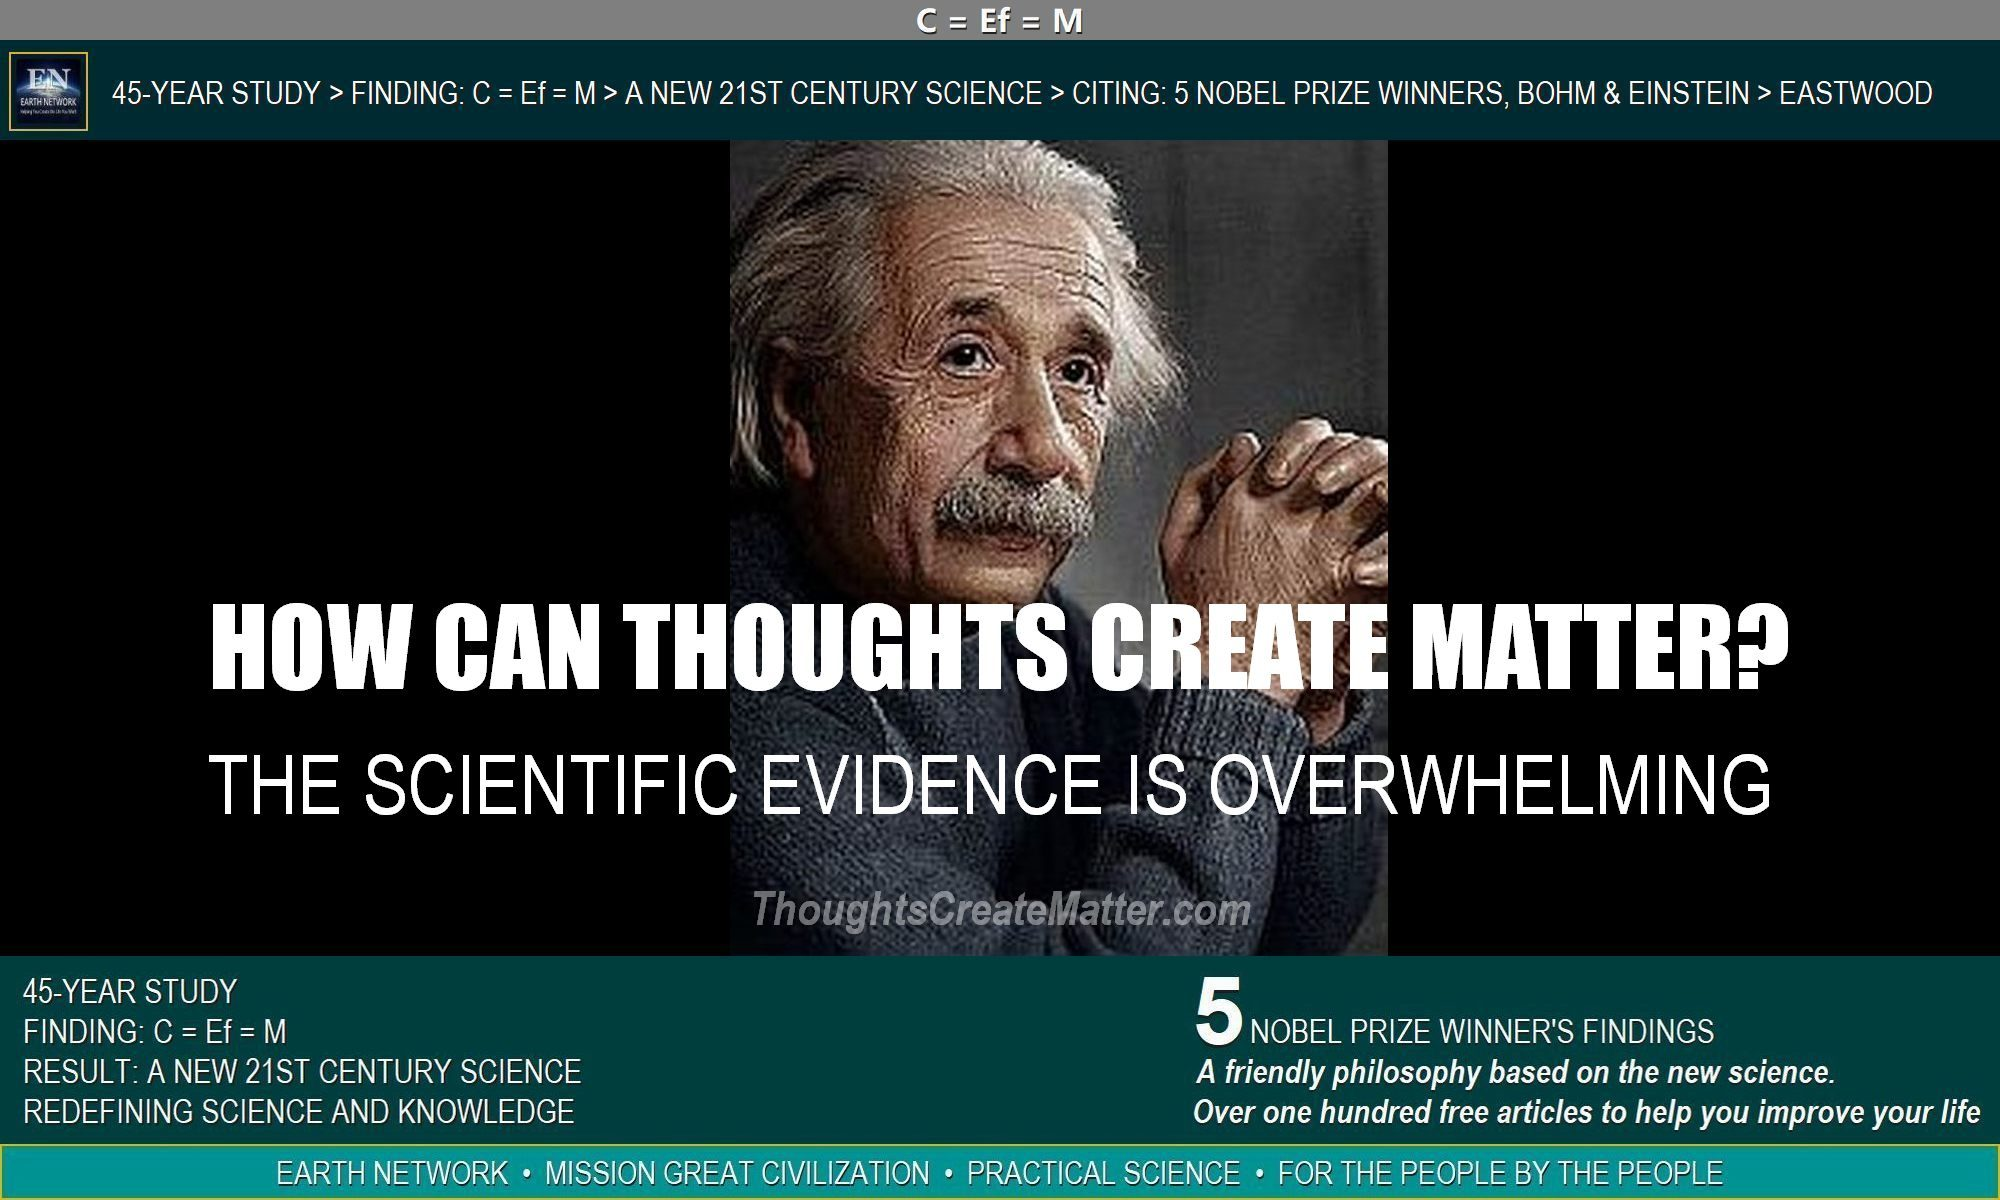 Einstein, being quoted in article, sets the stage for new science. How can thoughts create matter? There is scientific evidence and examples in this article.